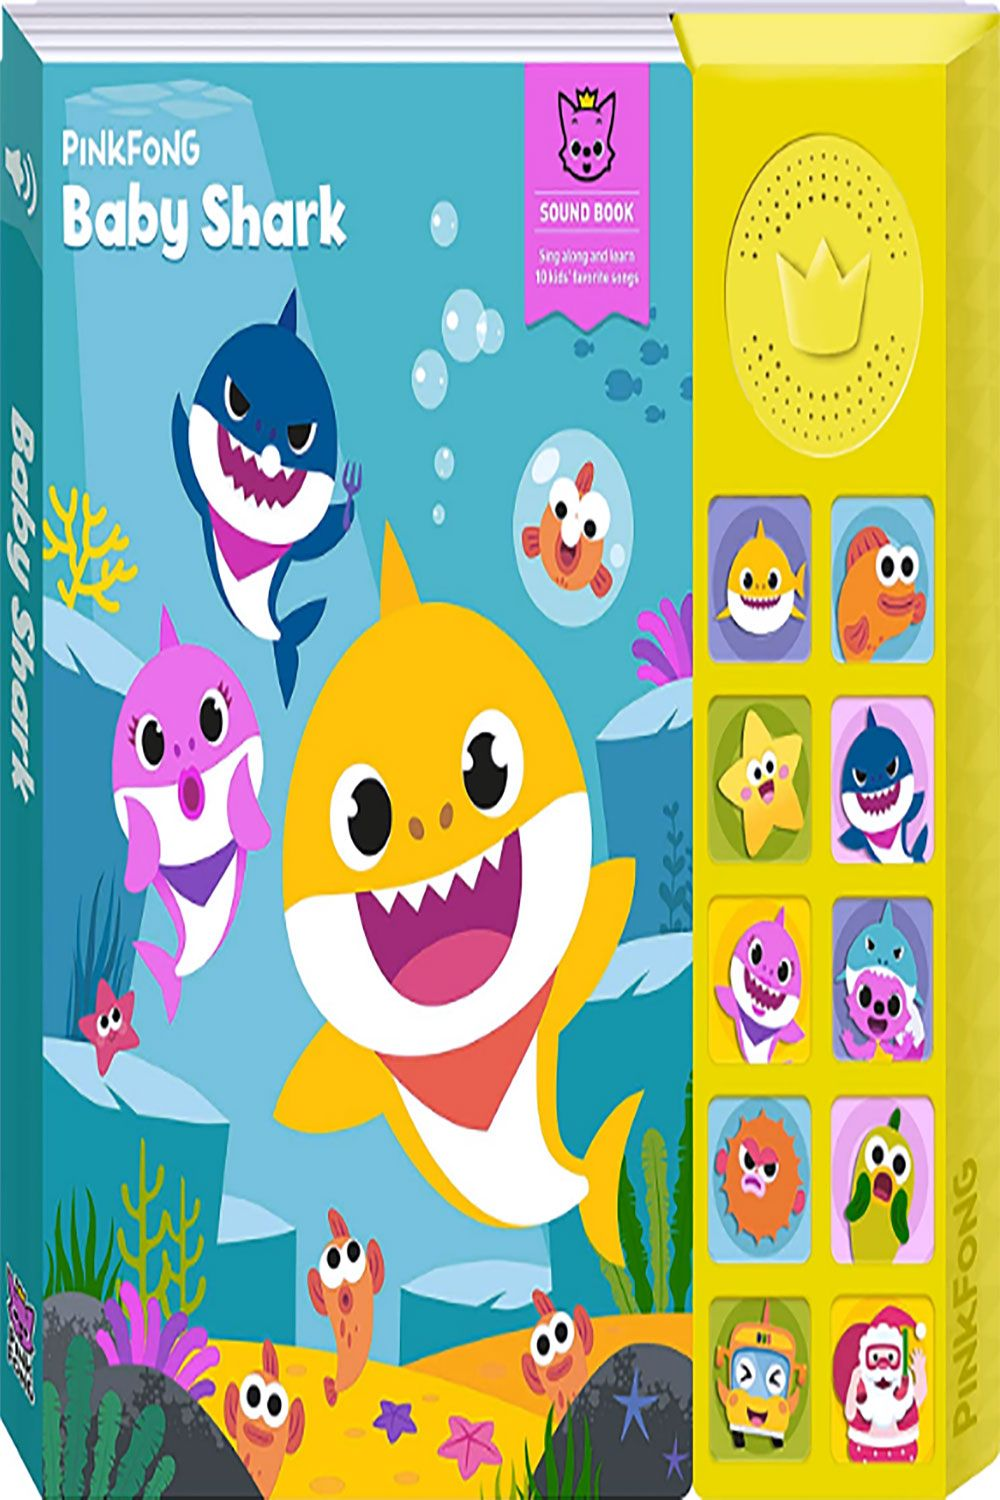 Pinkfong Baby Shark Official Sound Book Sound Book Baby Shark Song Baby Shark